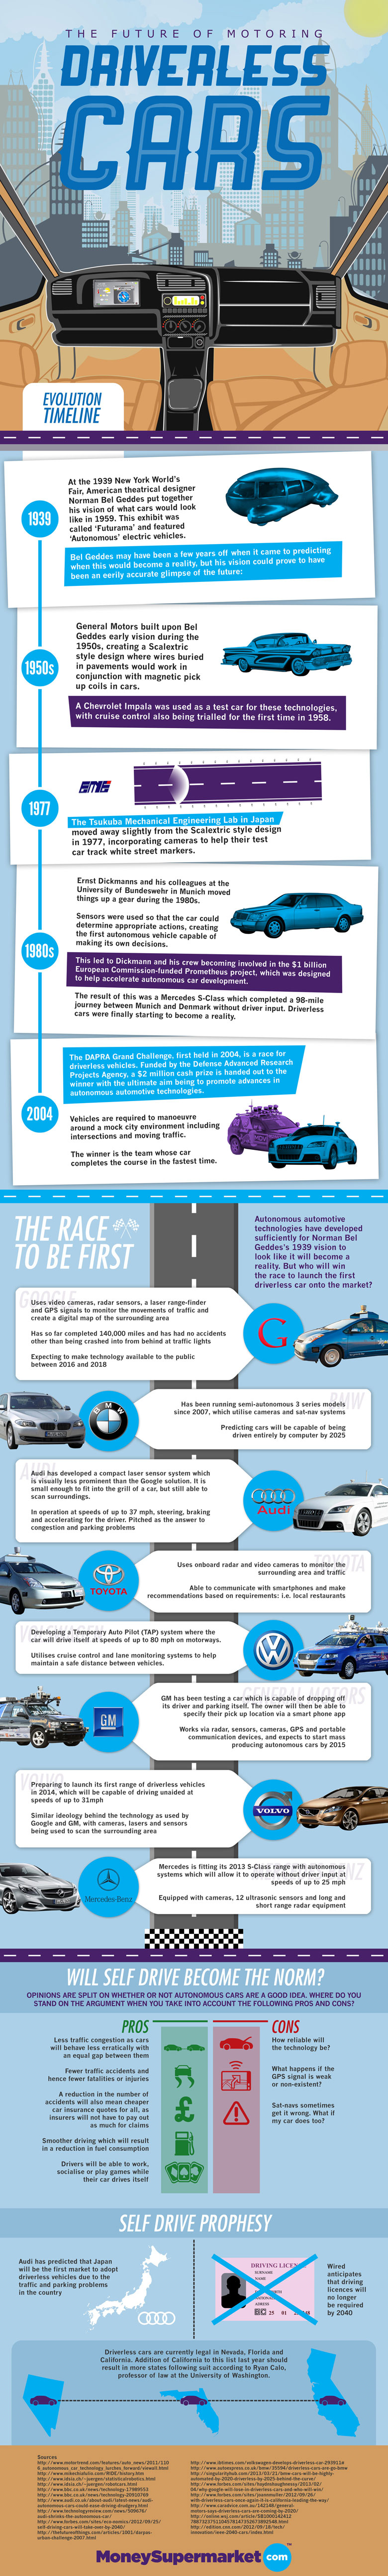 Driverless Cars: The Future of Motoring